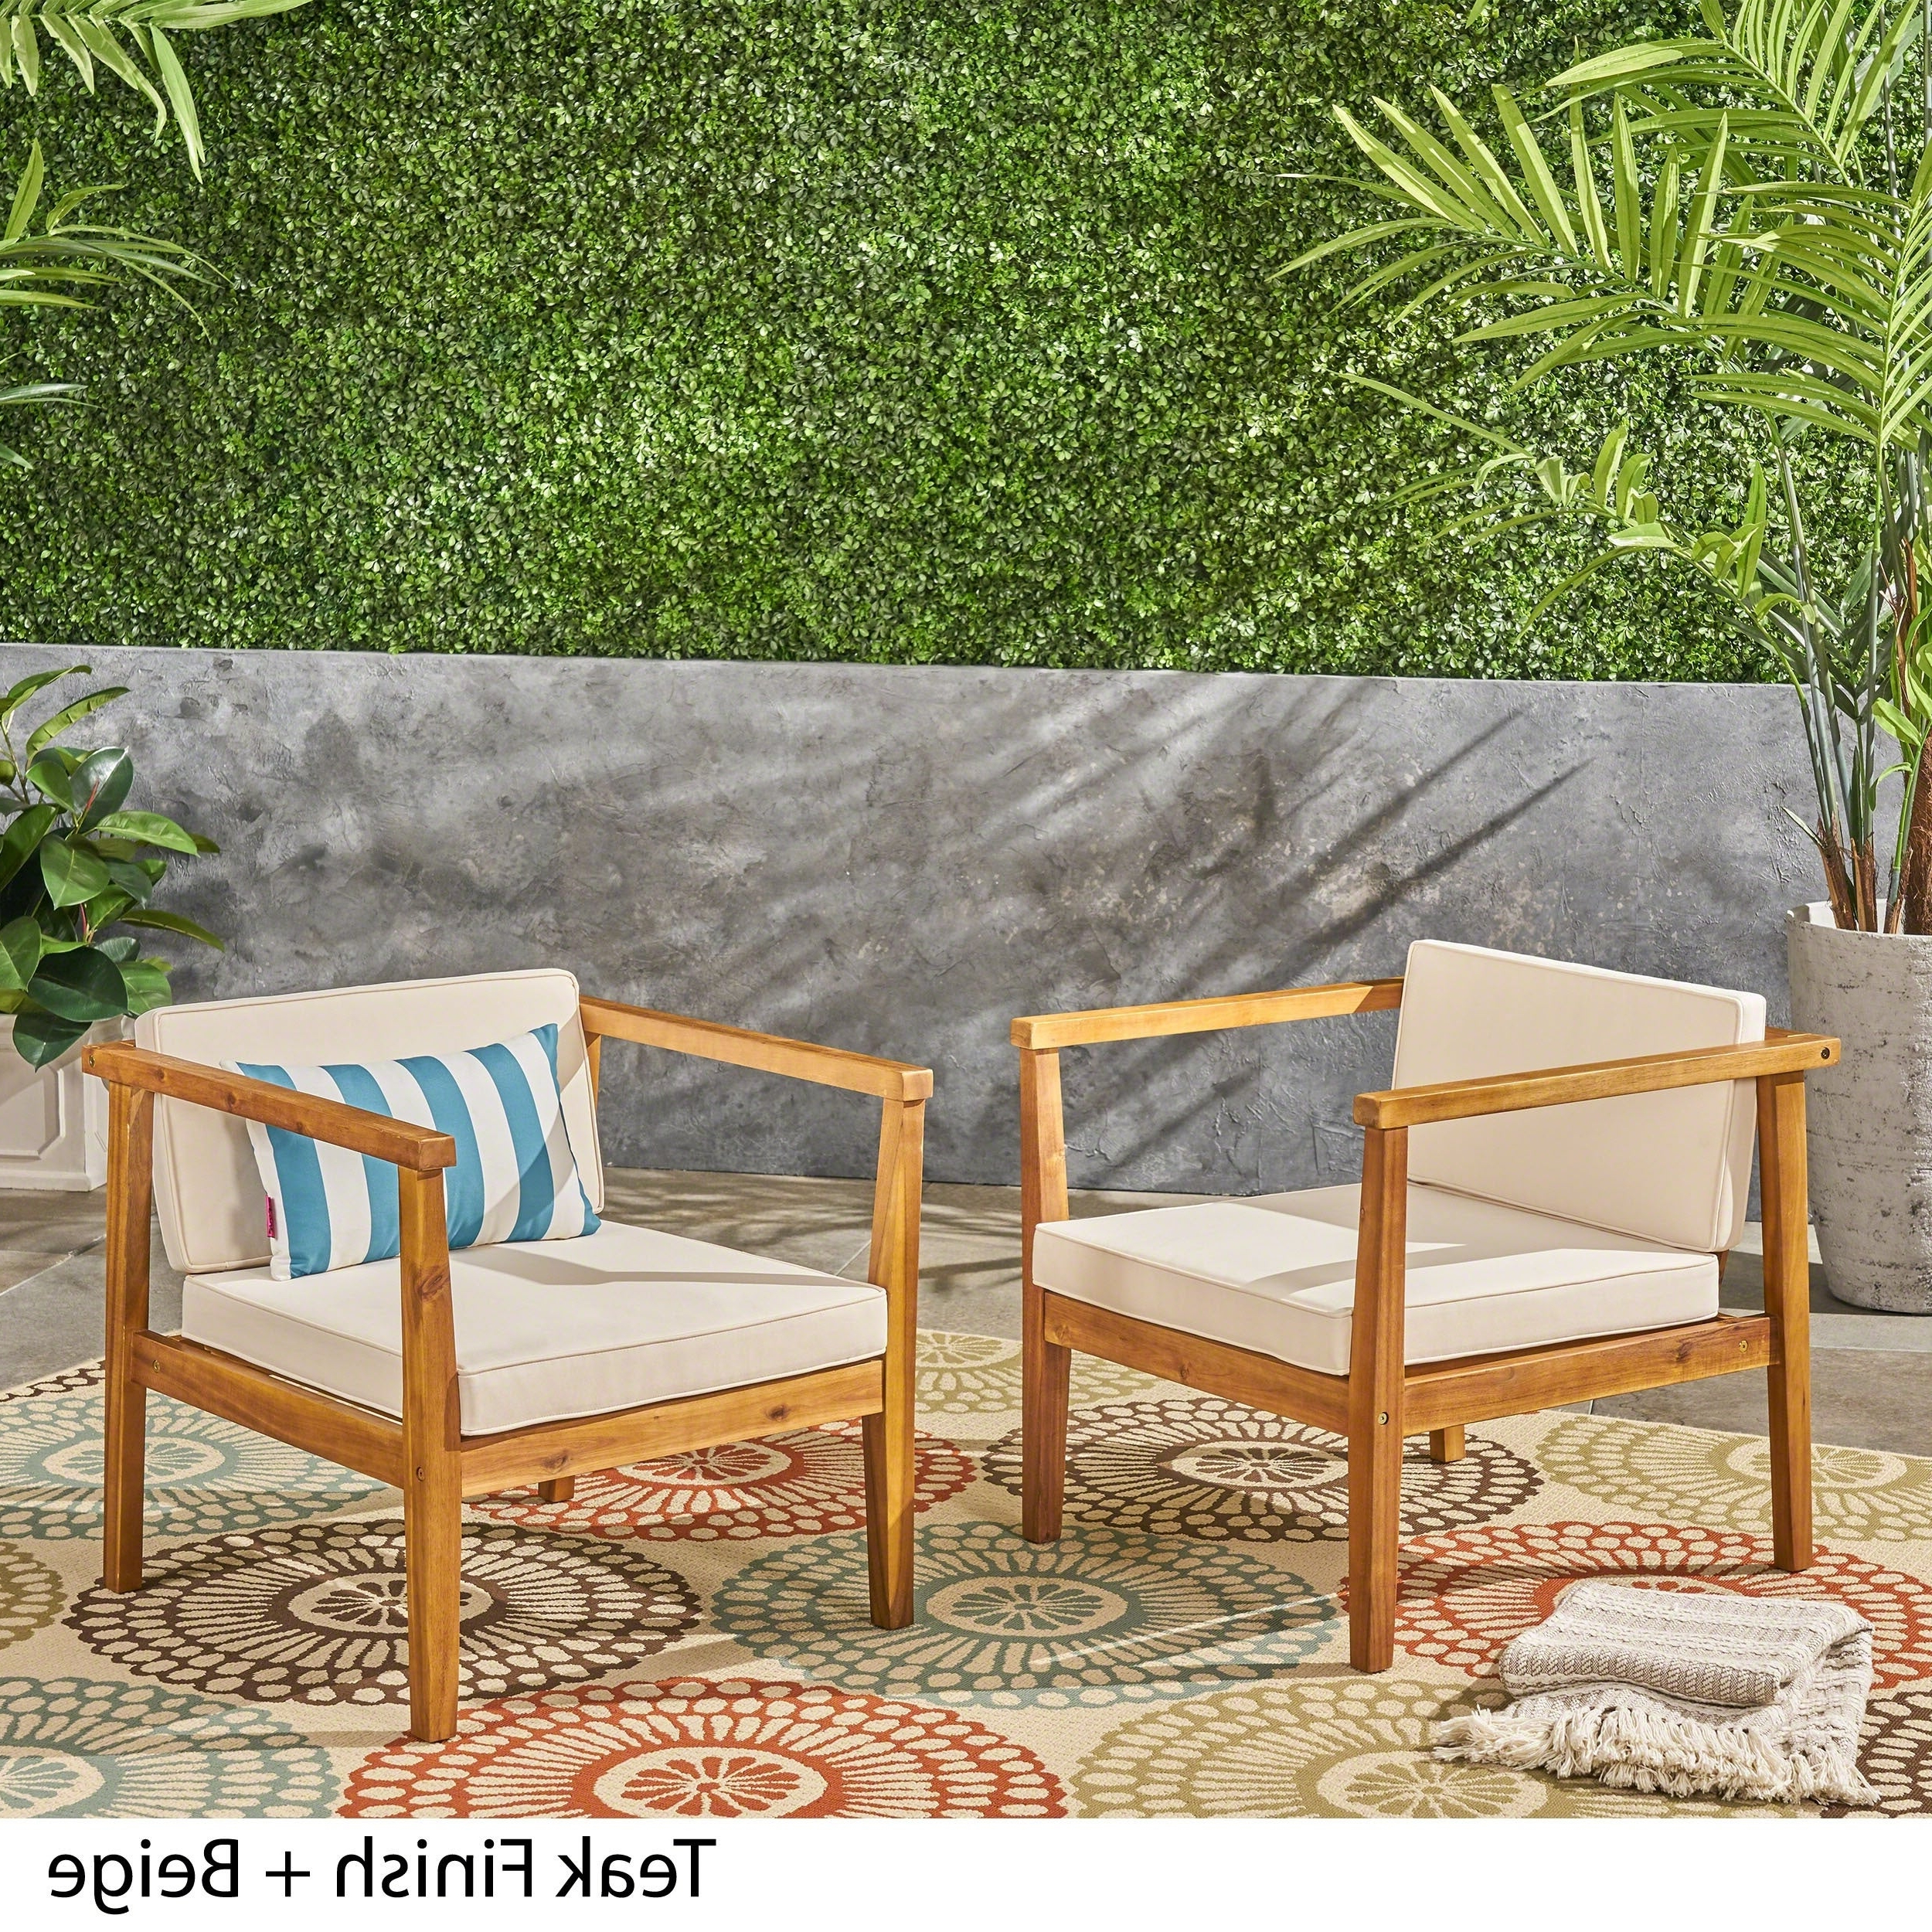 Fashionable Newbury Outdoor Acacia Wood Club Chairs With Cushions (Set Of 2) Christopher Knight Home Pertaining To Newbury Patio Sofas With Cushions (View 5 of 20)